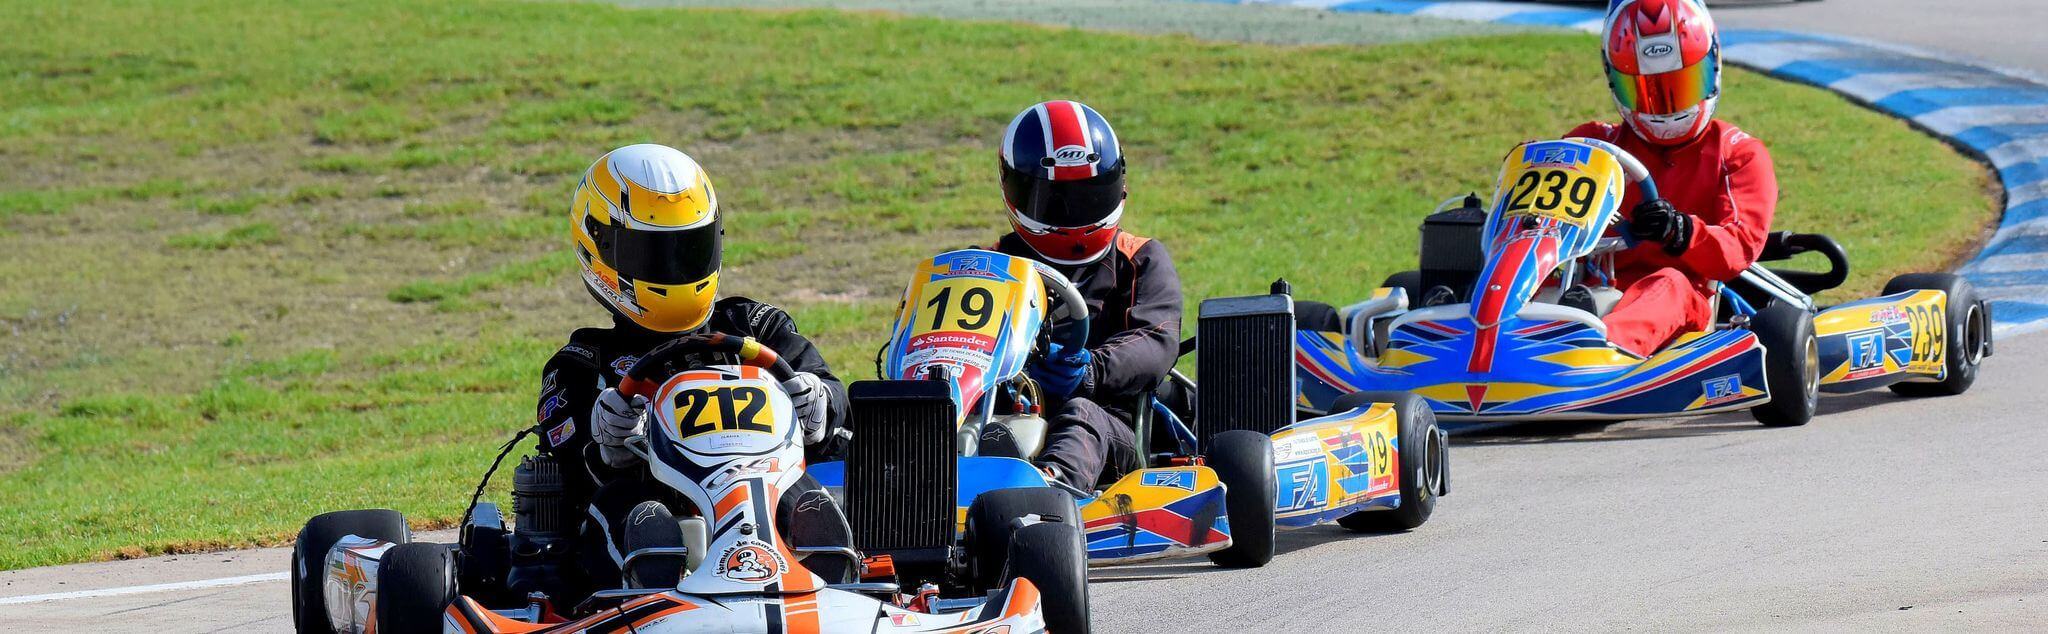 Karting in Warwickshire